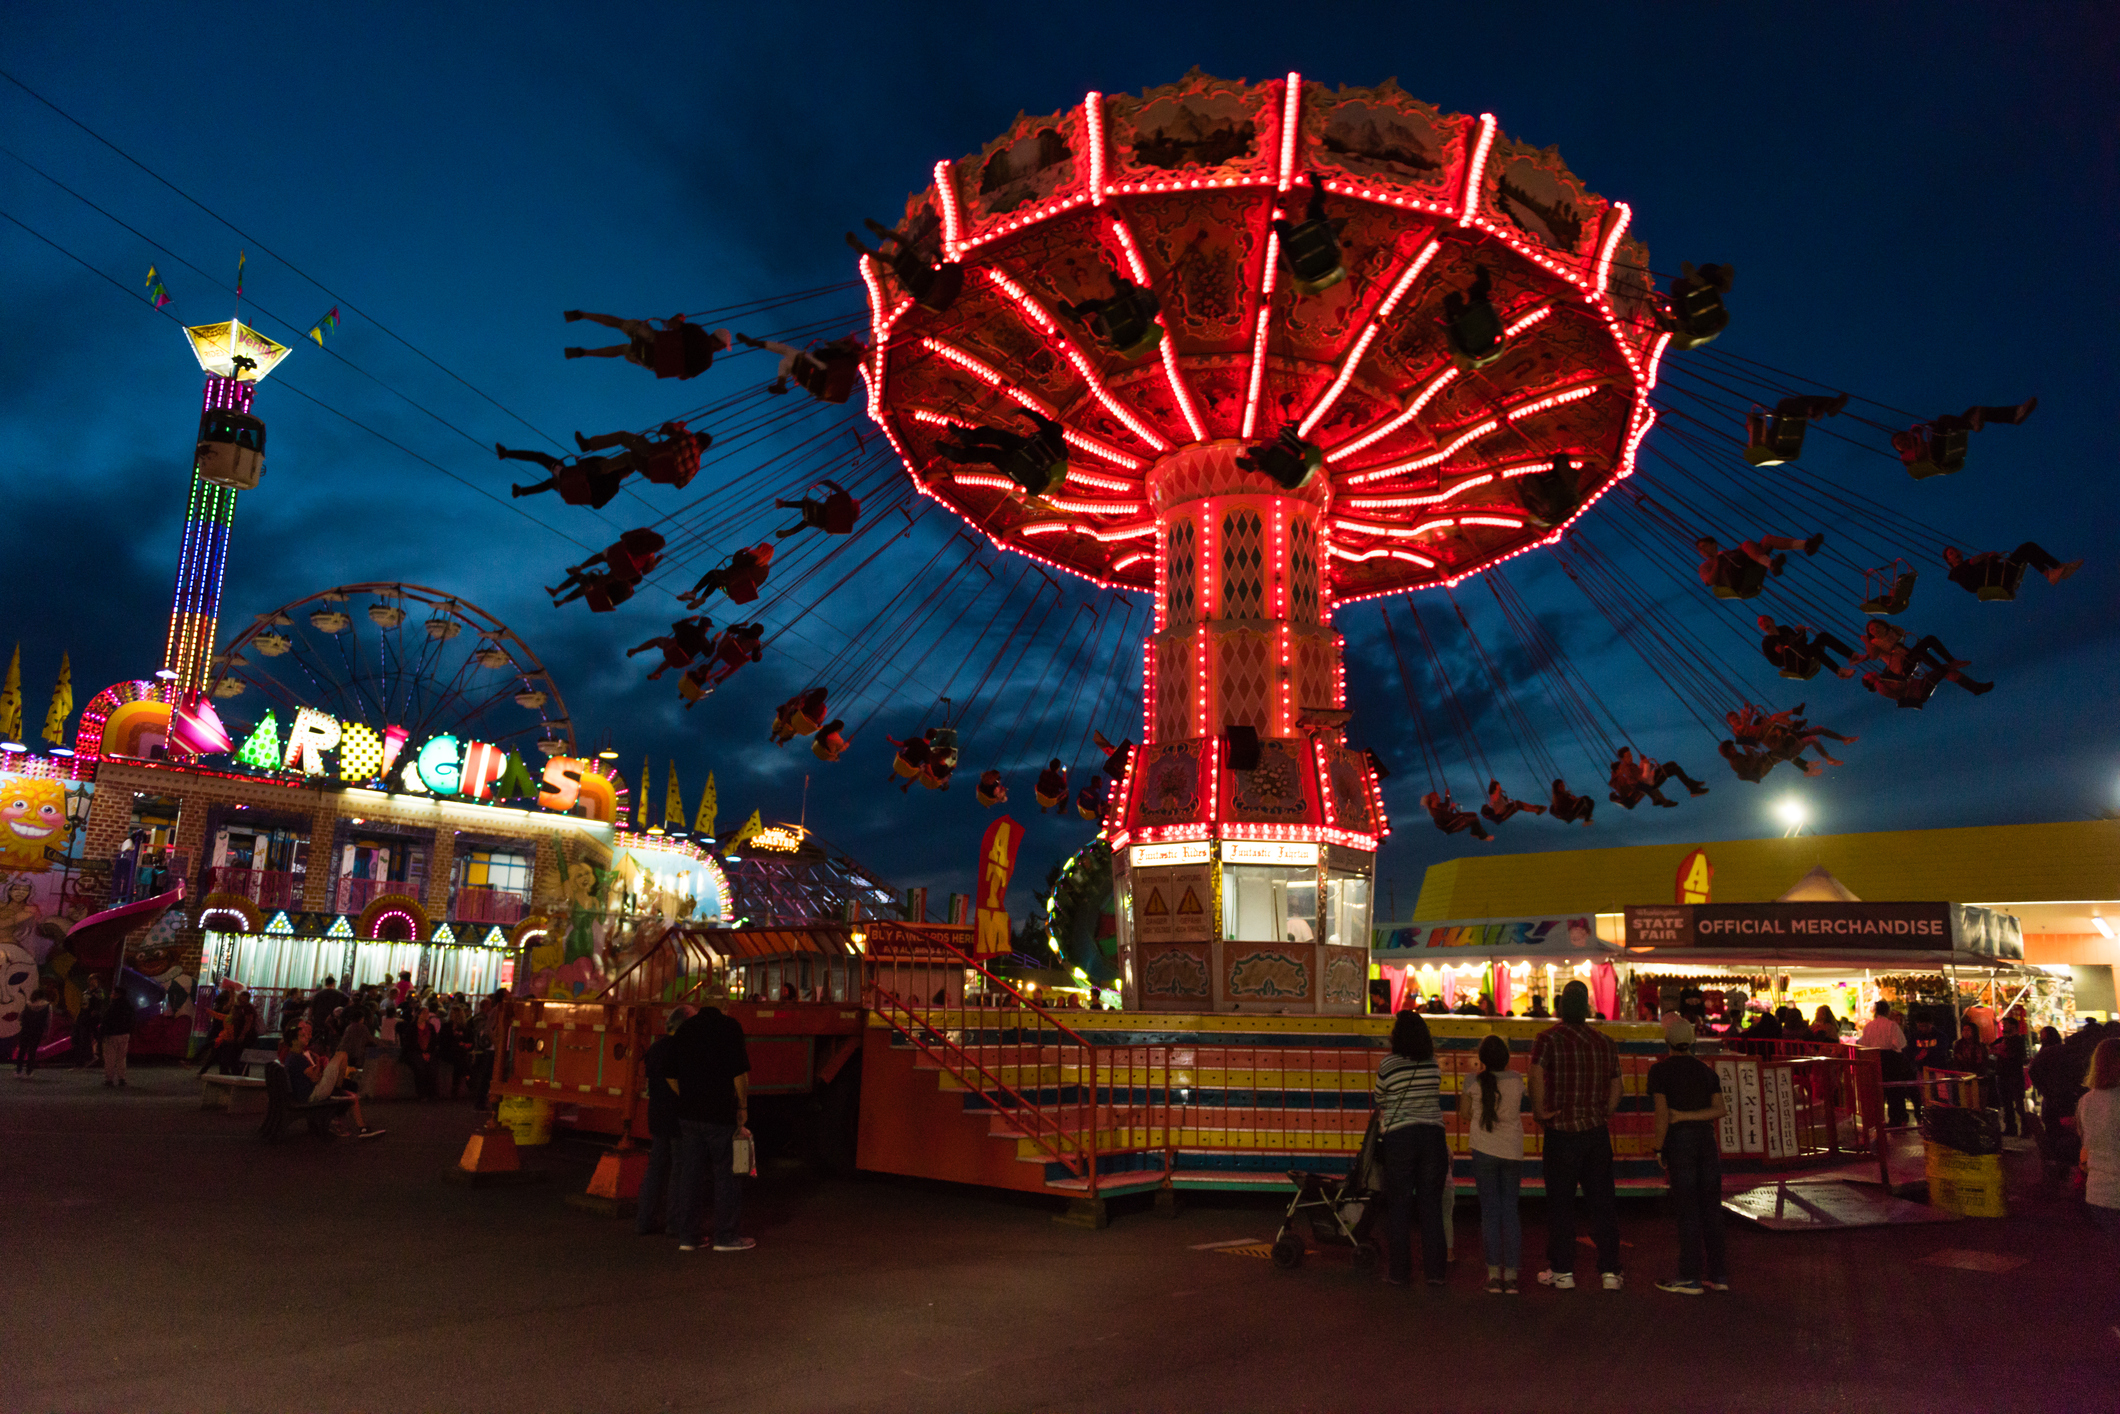 State Fair in Puyallup at twilight. The Fair is known by locals as the Puyallup fair and has been running since 1900.